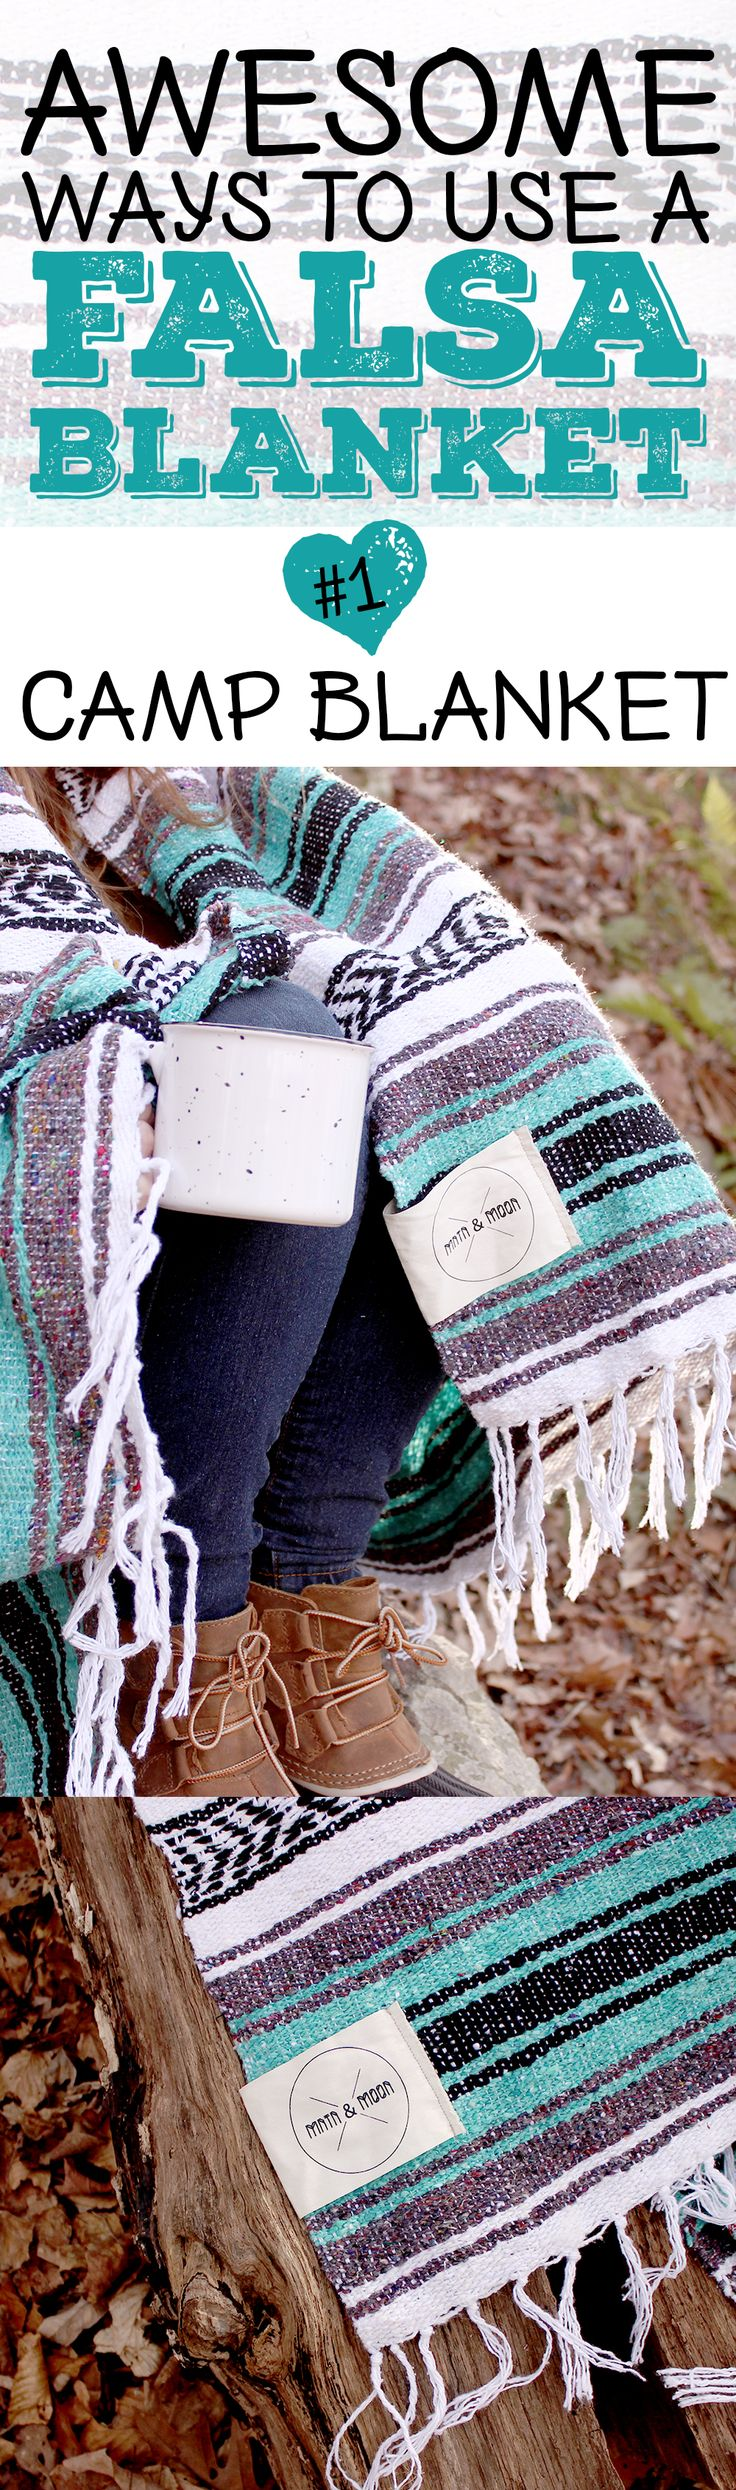 Awesome ways to use your falsa blanket: #1 Camp Blanket // These Mexican blankets can also be your favorite blanket for camping. Stay warm by the campfire during chilly nights!